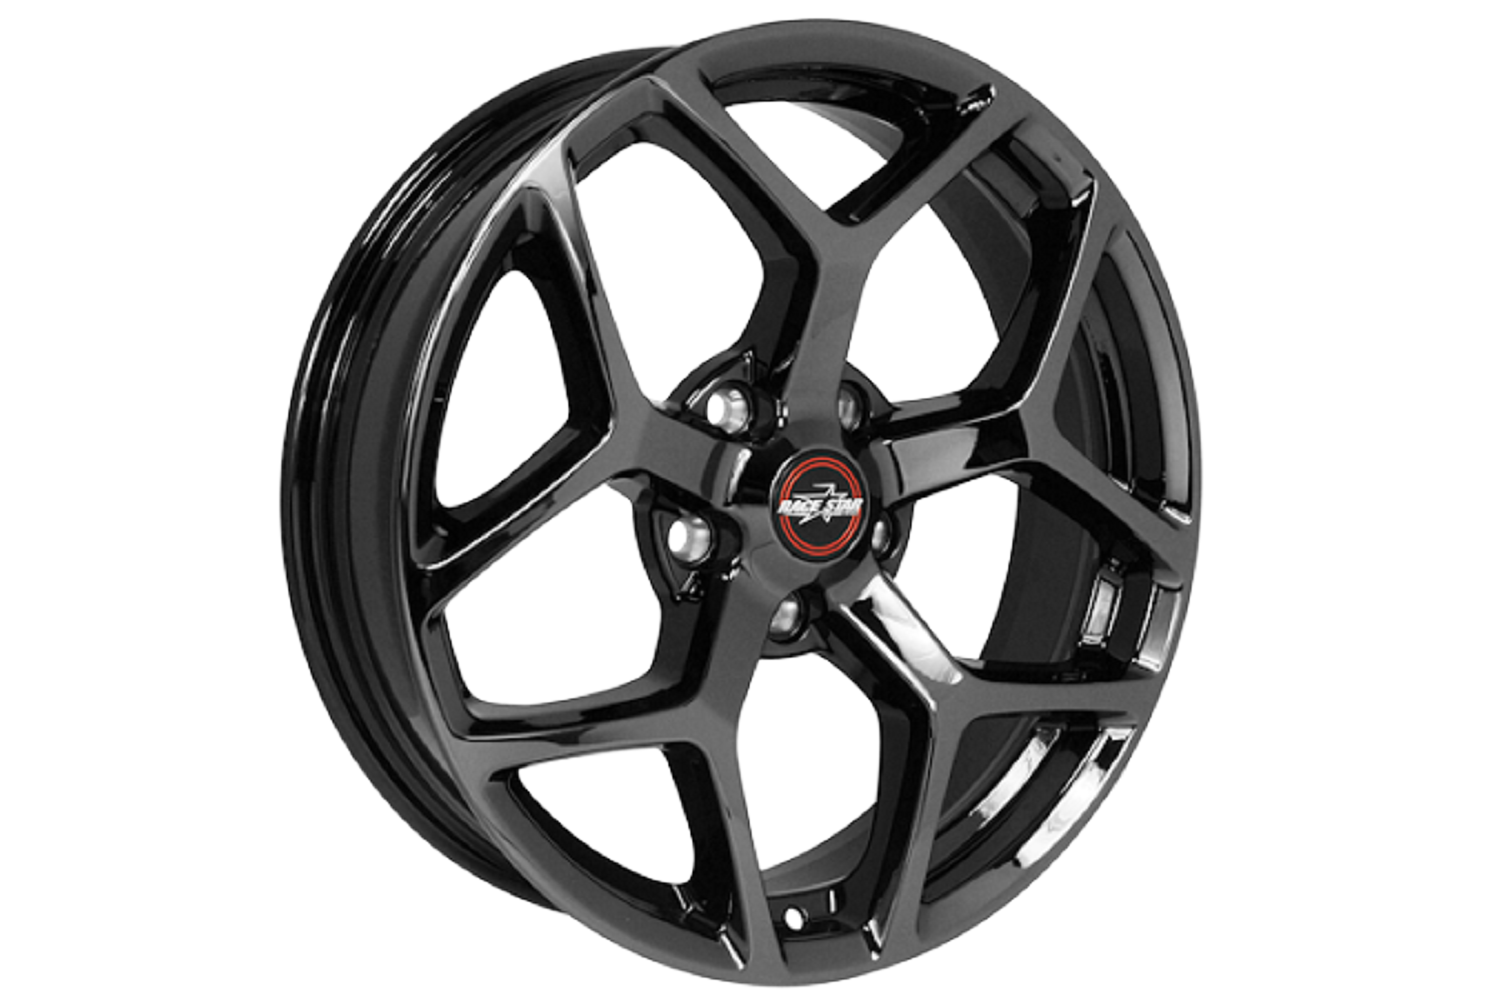 2005 Mustang Wheels >> Race Star S197 S550 Mustang 18x8 5 95 Recluse Black Chrome Wheel 2005 2019